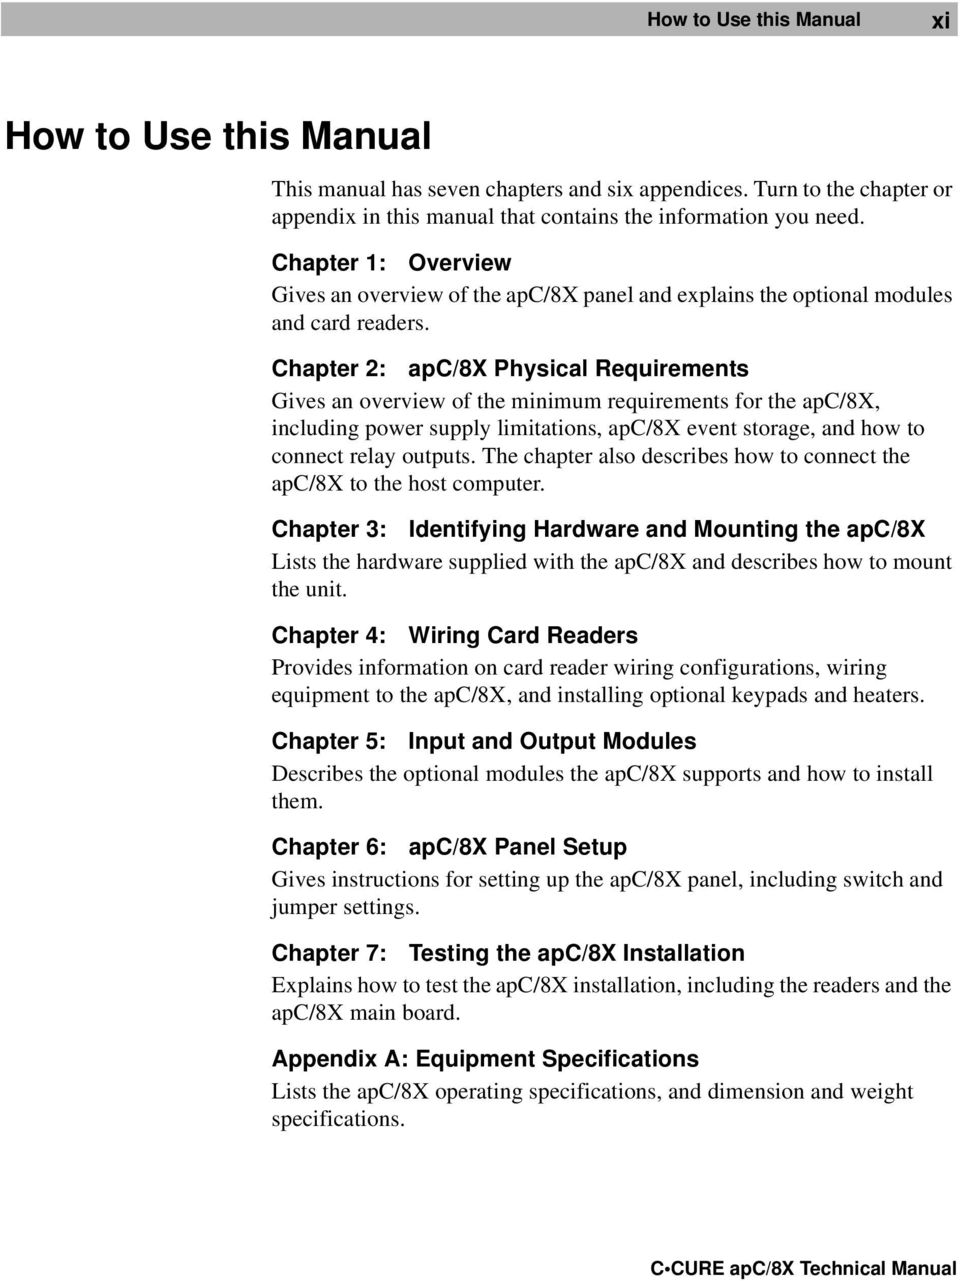 Apc 8x Technical Manual Pdf Istar Panel Wiring Diagram Chapter 2 Physical Requirements Gives An Overview Of The Minimum For